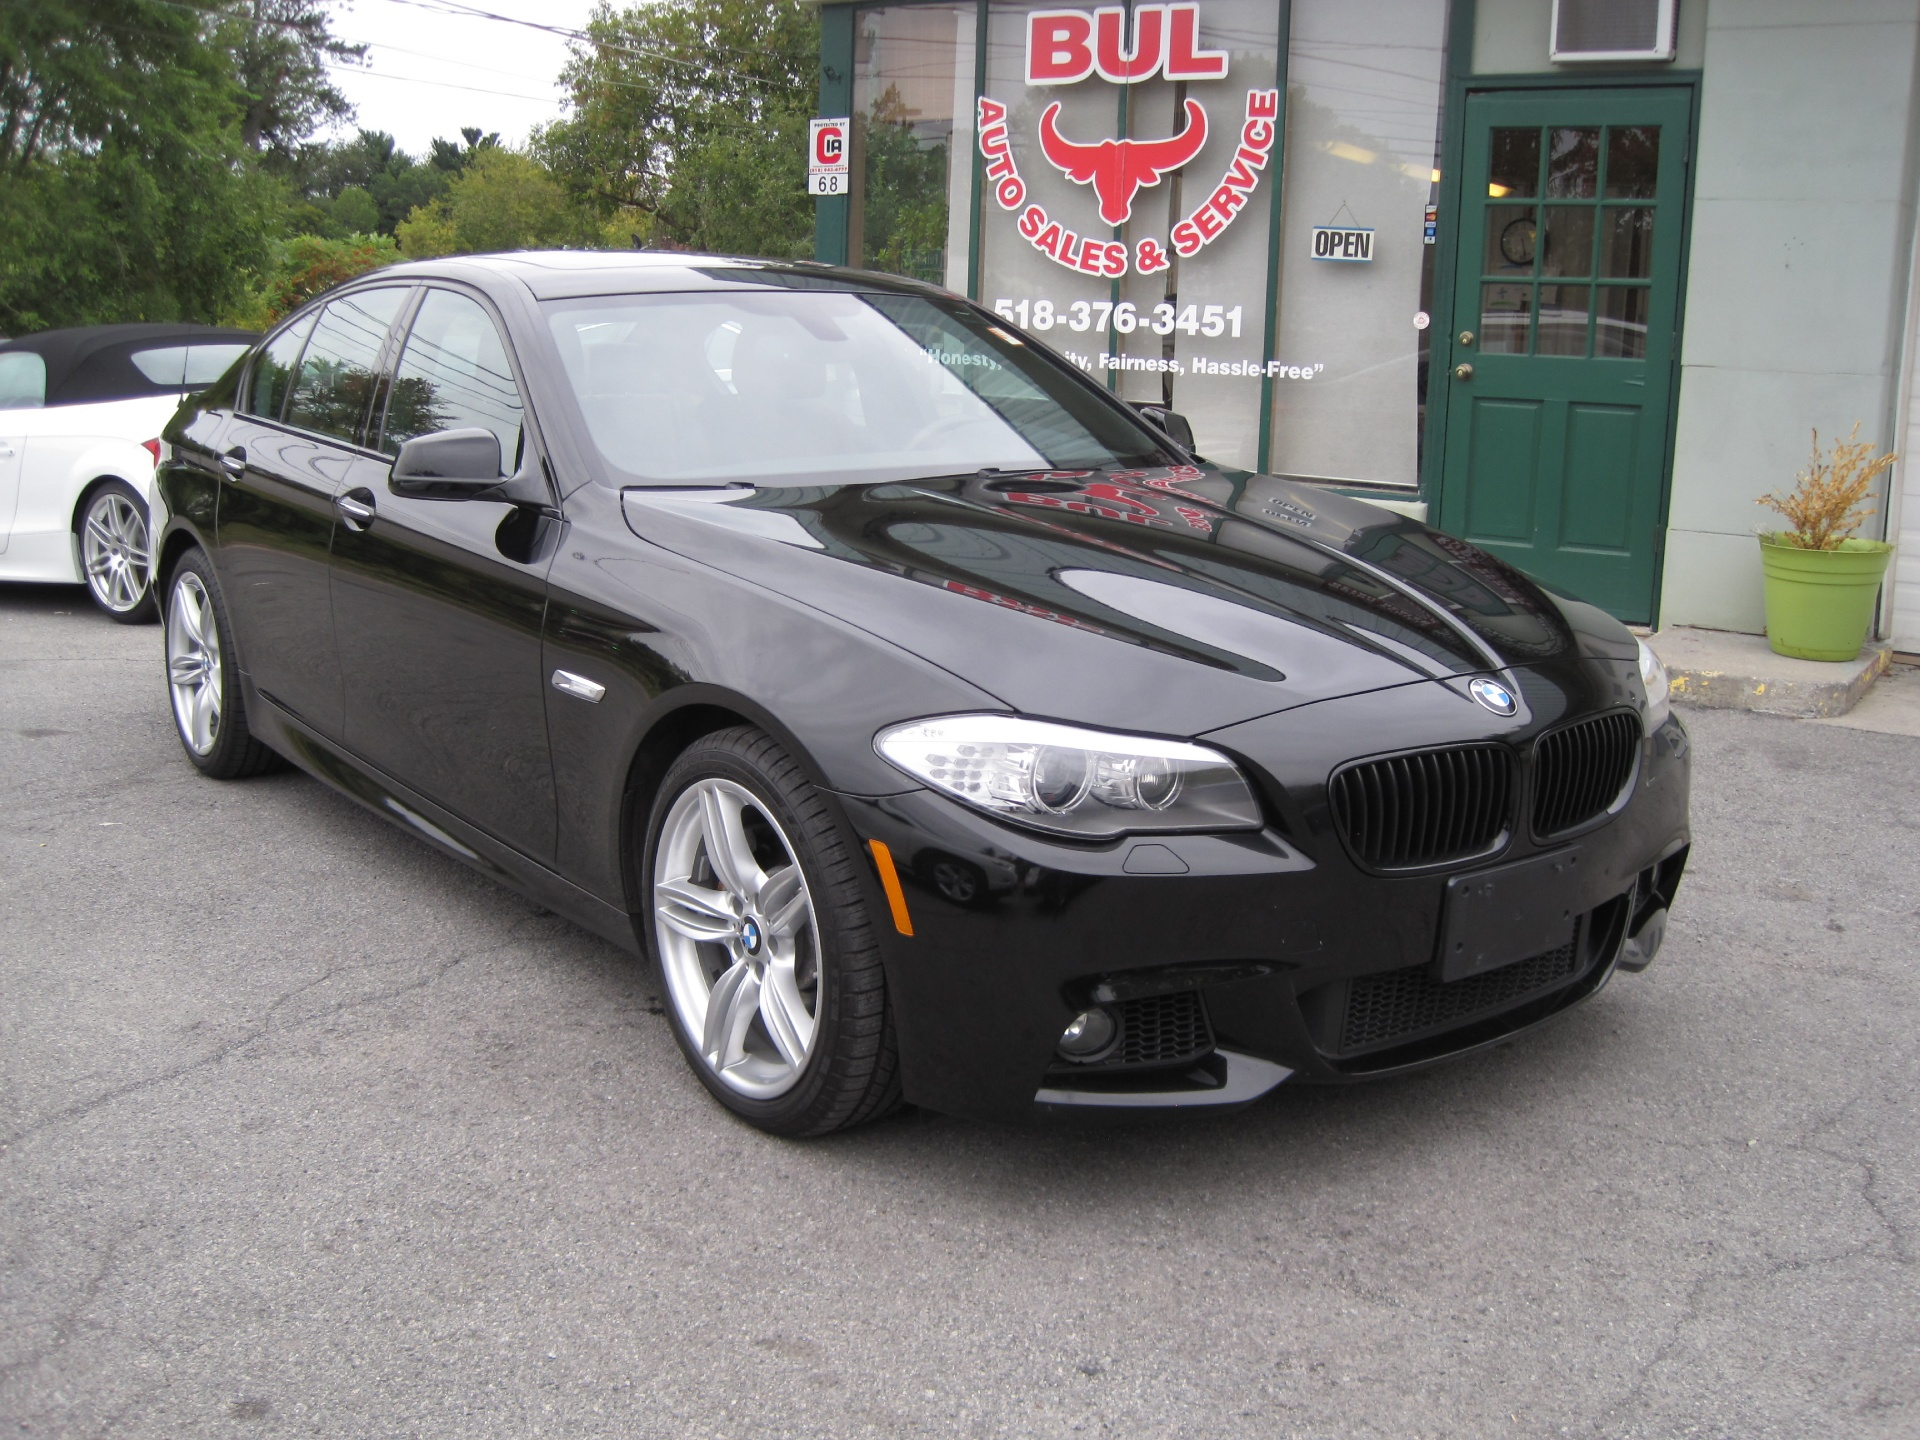 2013 bmw 5 series 535i xdrive loaded m sport cold wthr premium technology stock 15140 for sale. Black Bedroom Furniture Sets. Home Design Ideas